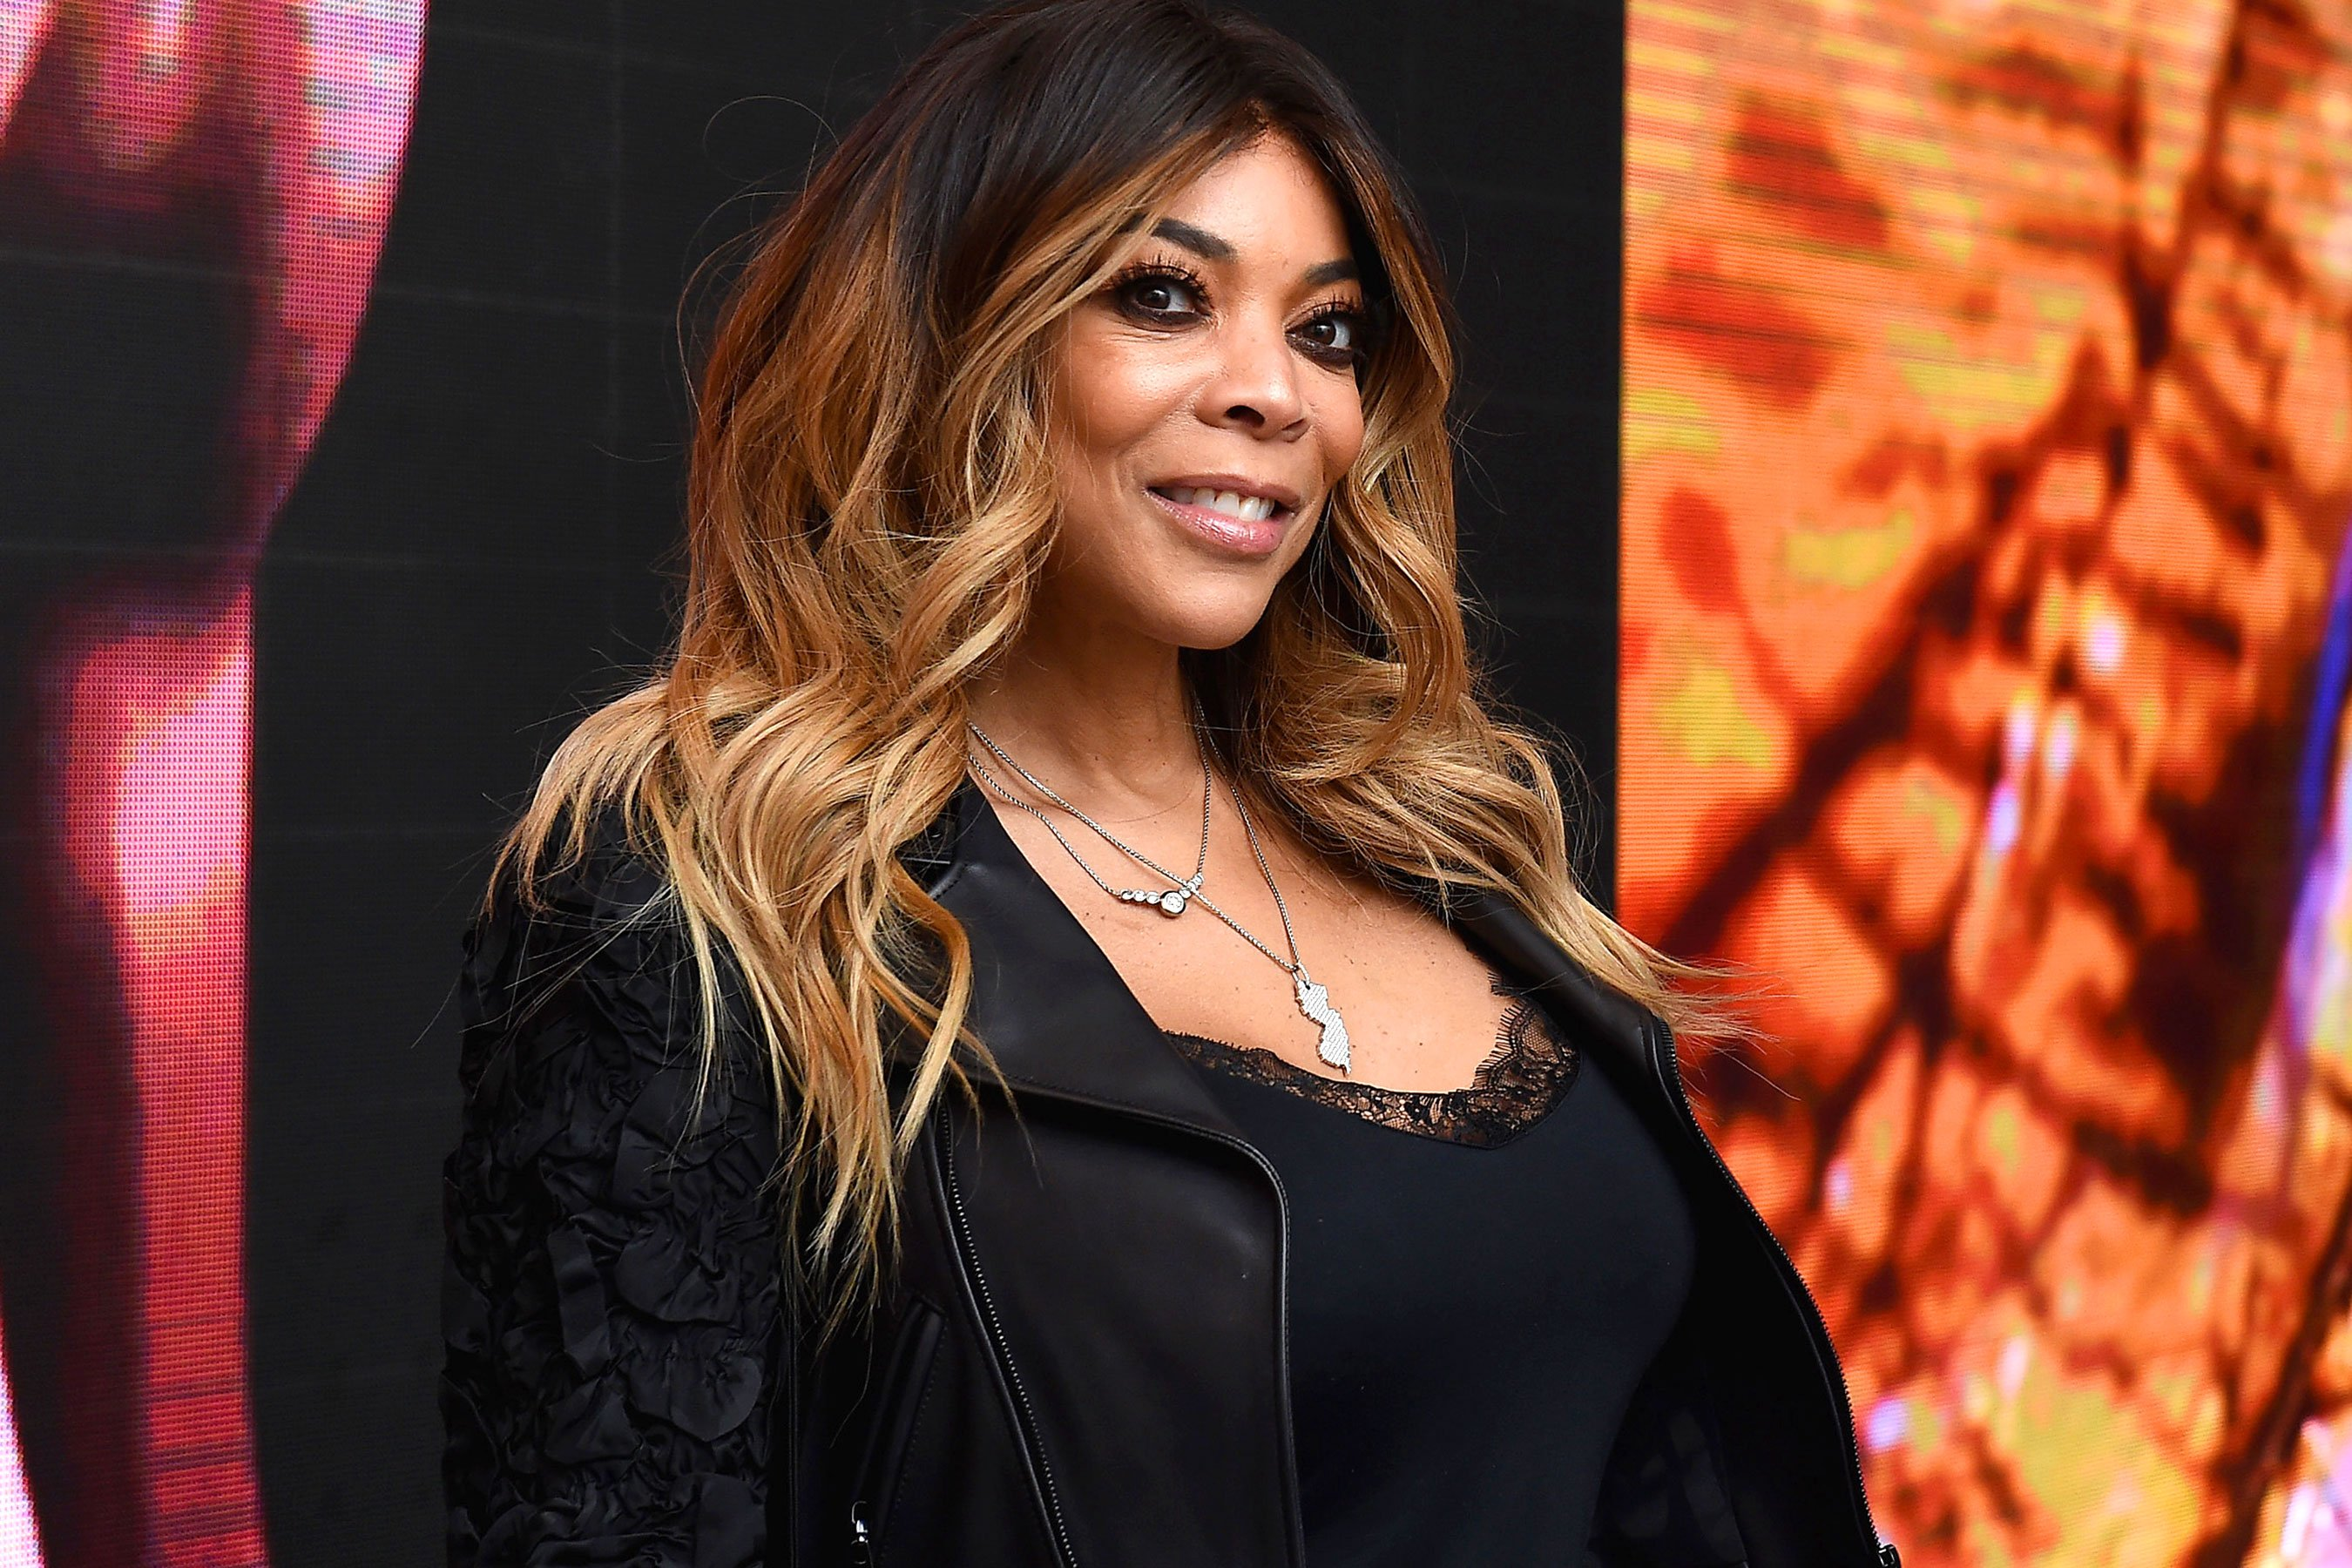 Wendy Williams suffers from thyroid issues and Graves' disease, will take 3-week hiatus